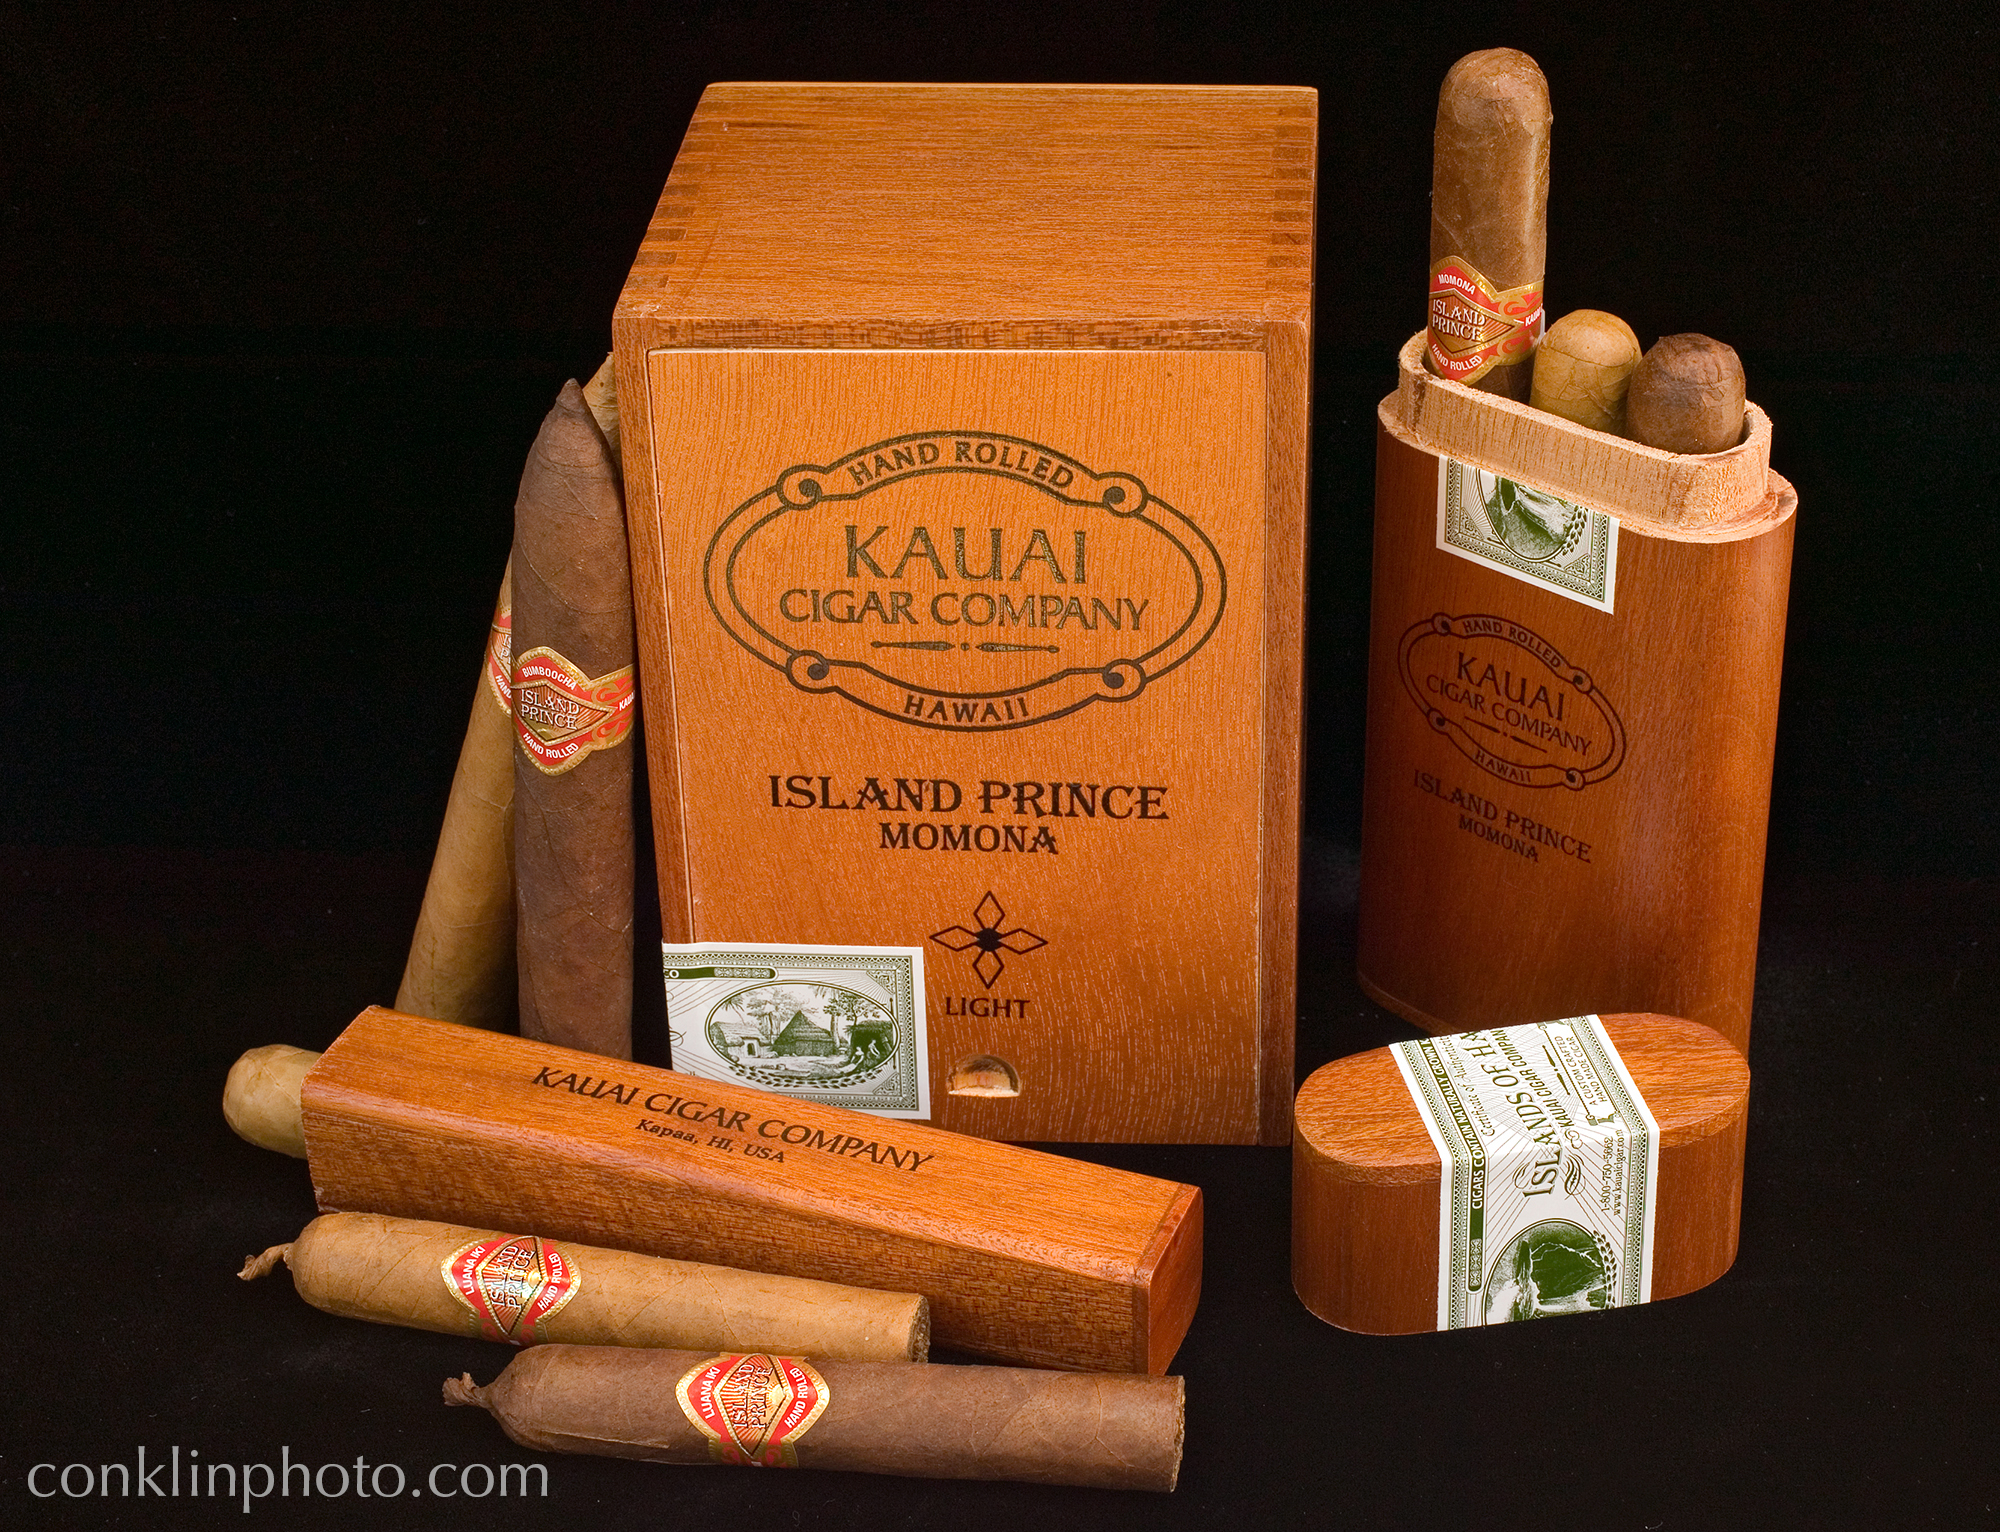 "<a href=""http://www.kauaicigar.com"" target=""_blank"">Kauai Cigar Co.</a>"